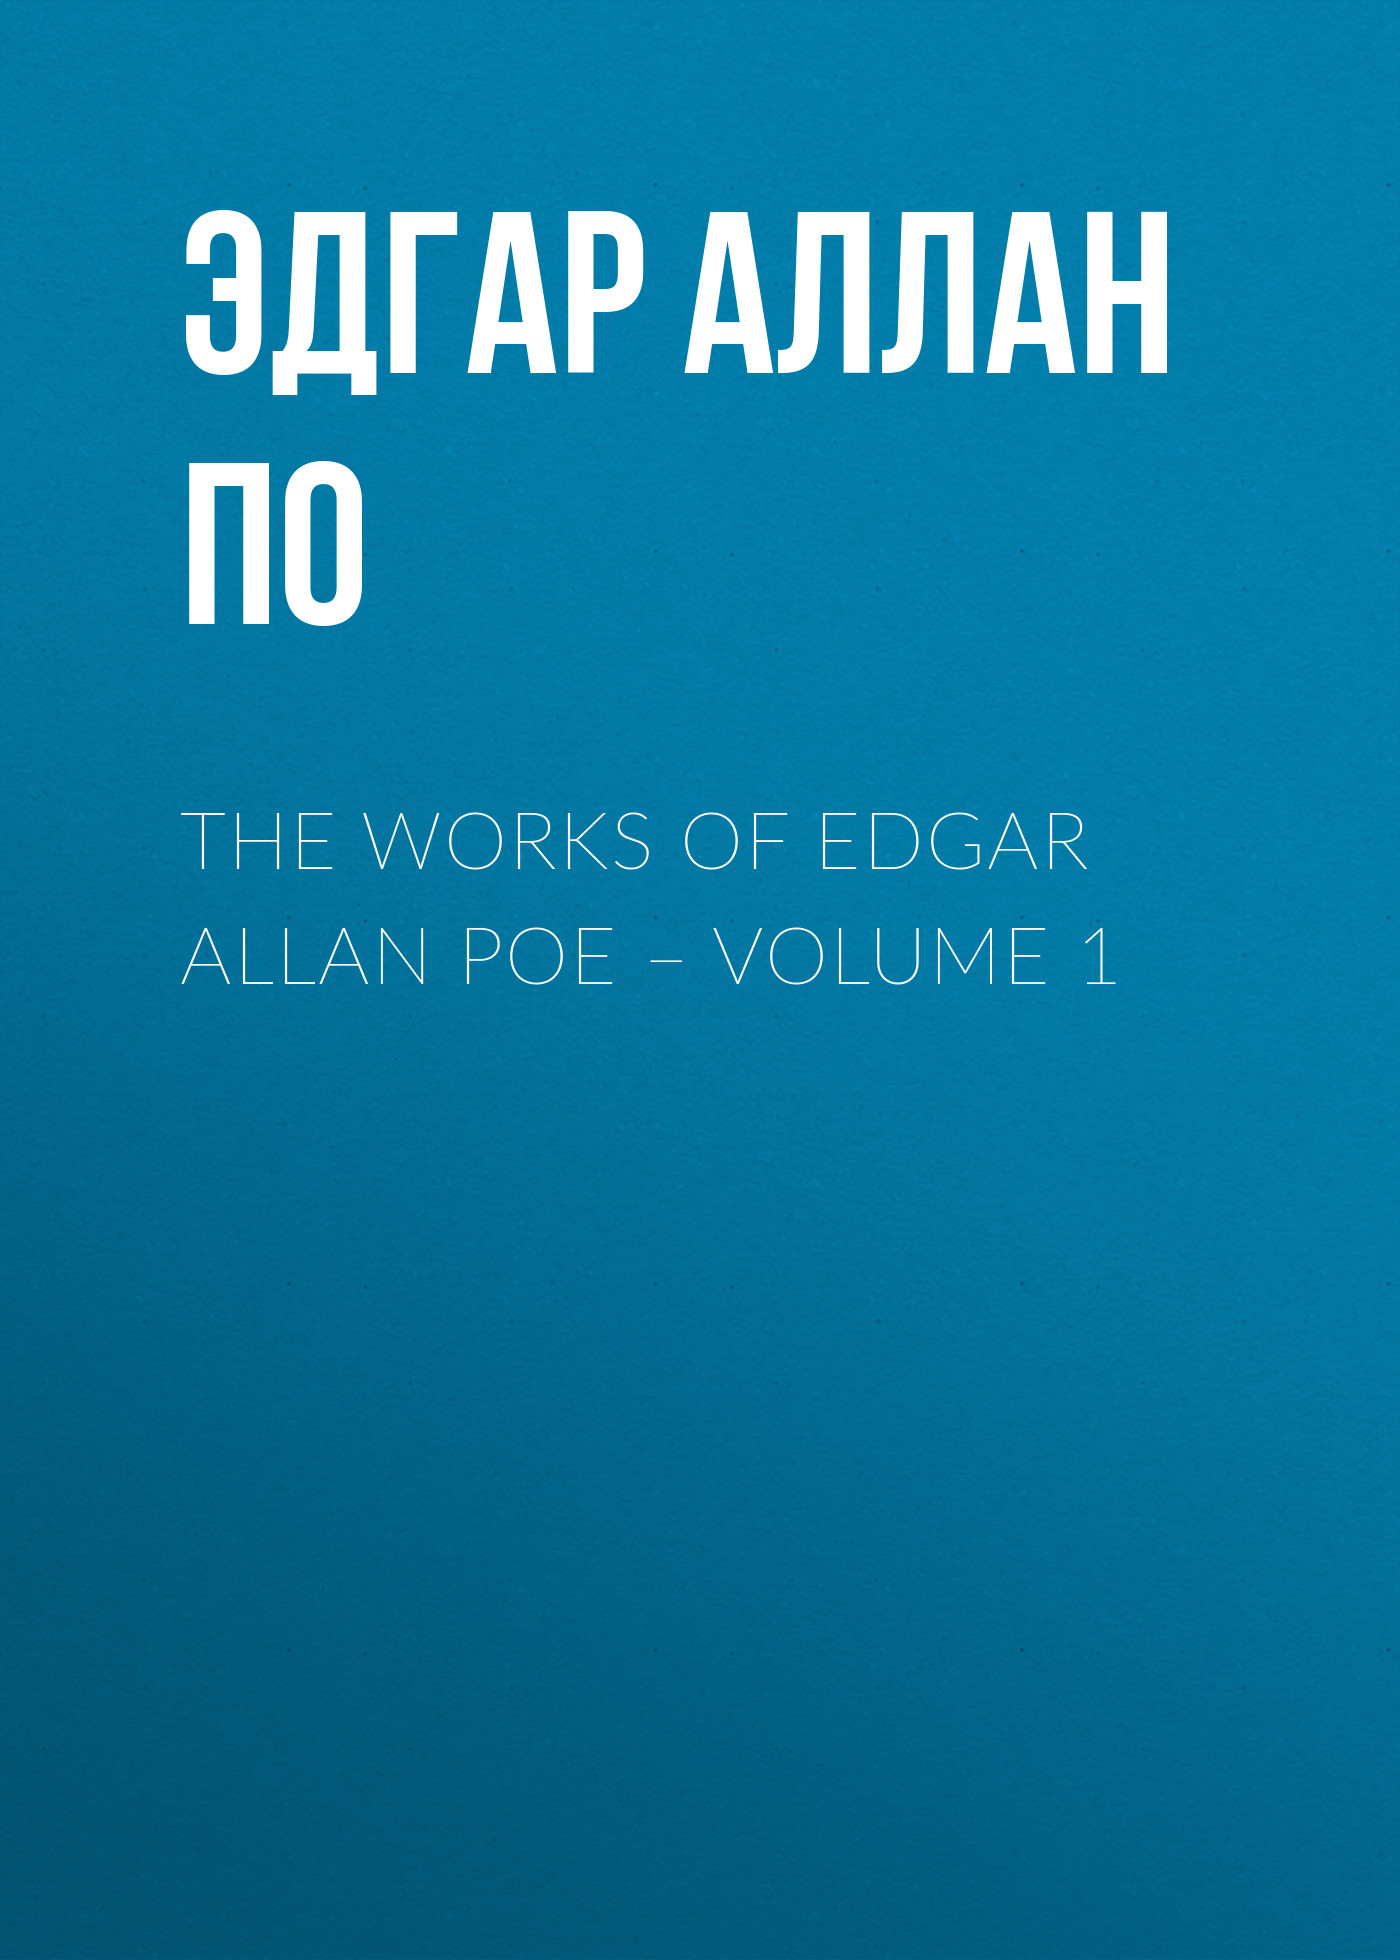 Эдгар Аллан По The Works of Edgar Allan Poe – Volume 1 эдгар аллан по the purloined letter